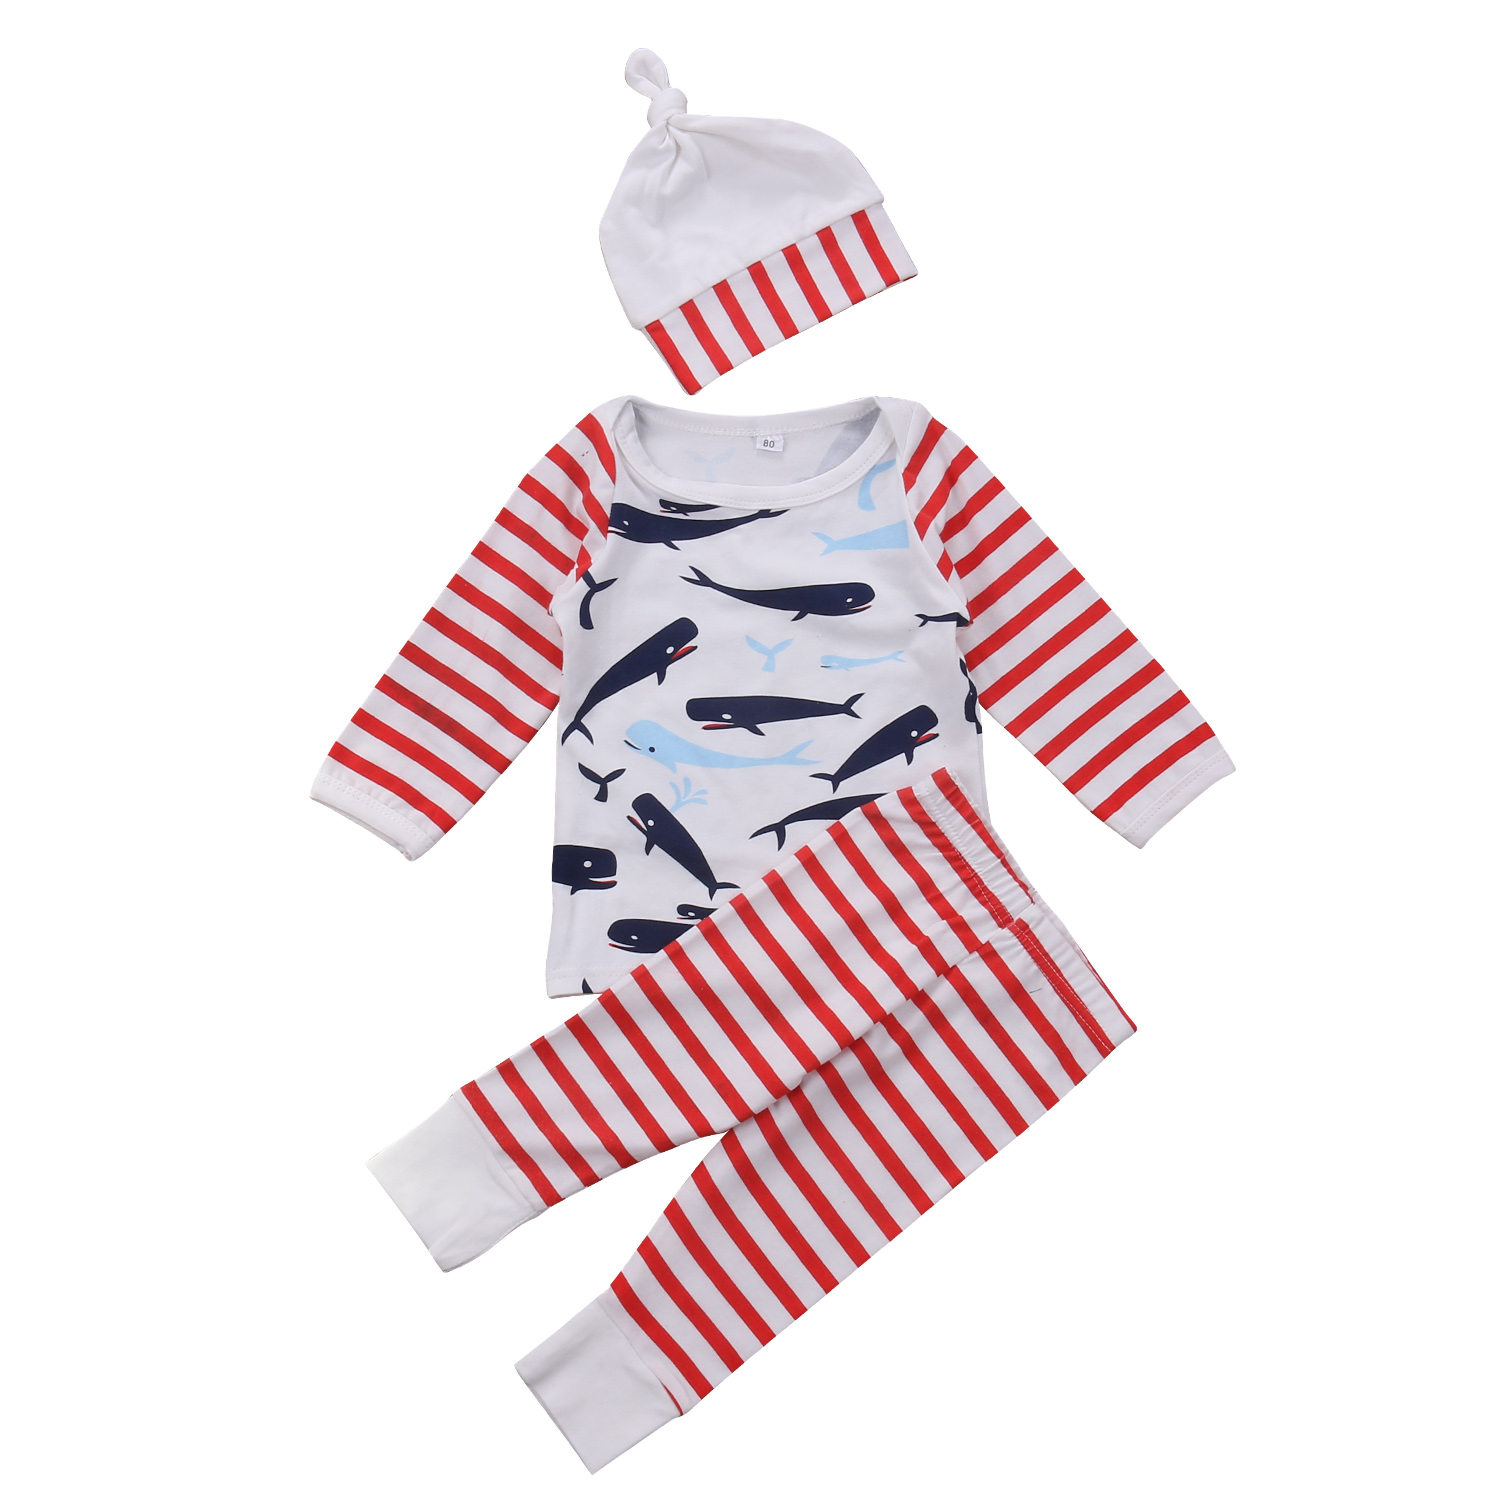 3pcs Newborn Infant Baby Boy Girl Whales Outfits Clothes Set Babies Stripes T-shirt Pants Hats Leggings Clothing Pjs